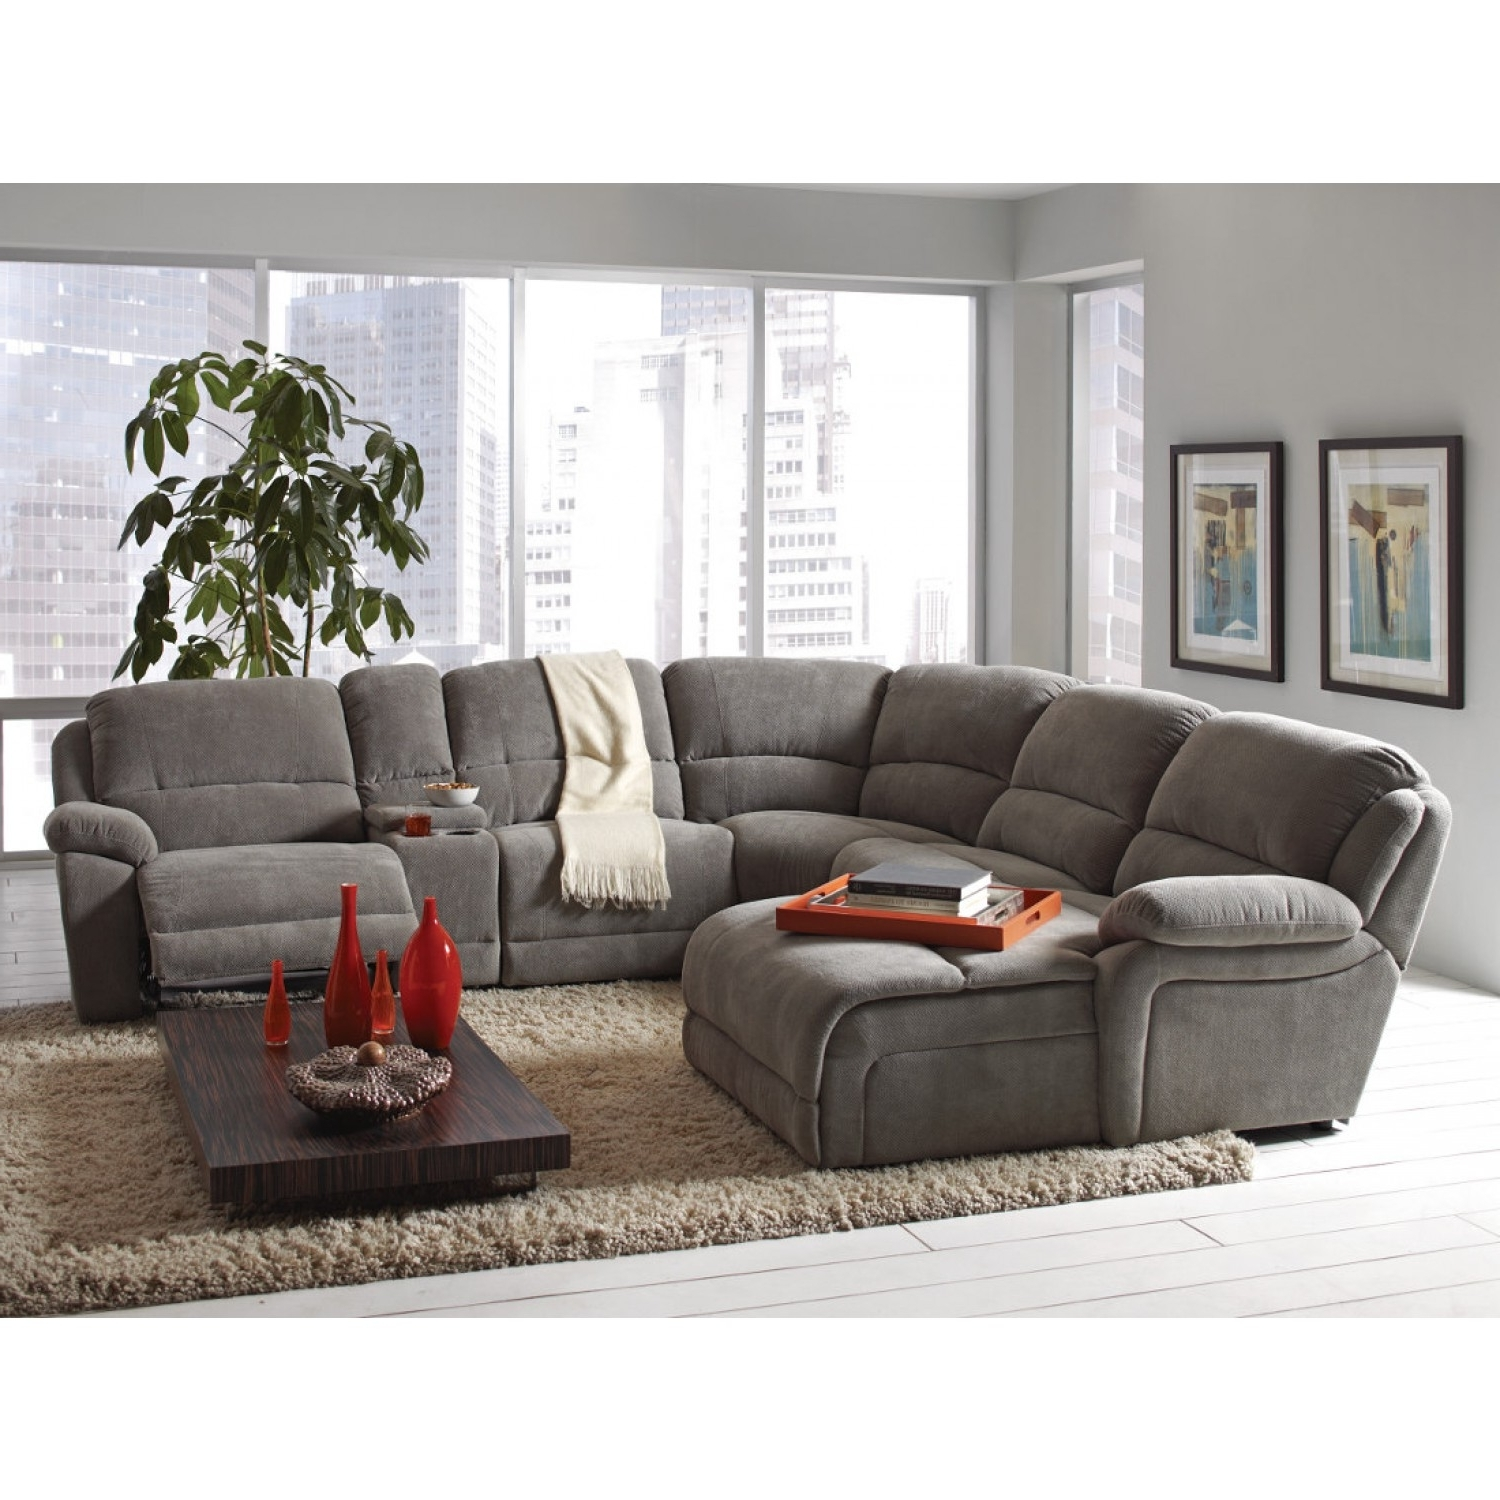 Widely Used Coaster Mackenzie Silver 6 Piece Reclining Sectional Sofa With Throughout Pittsburgh Sectional Sofas (View 9 of 20)